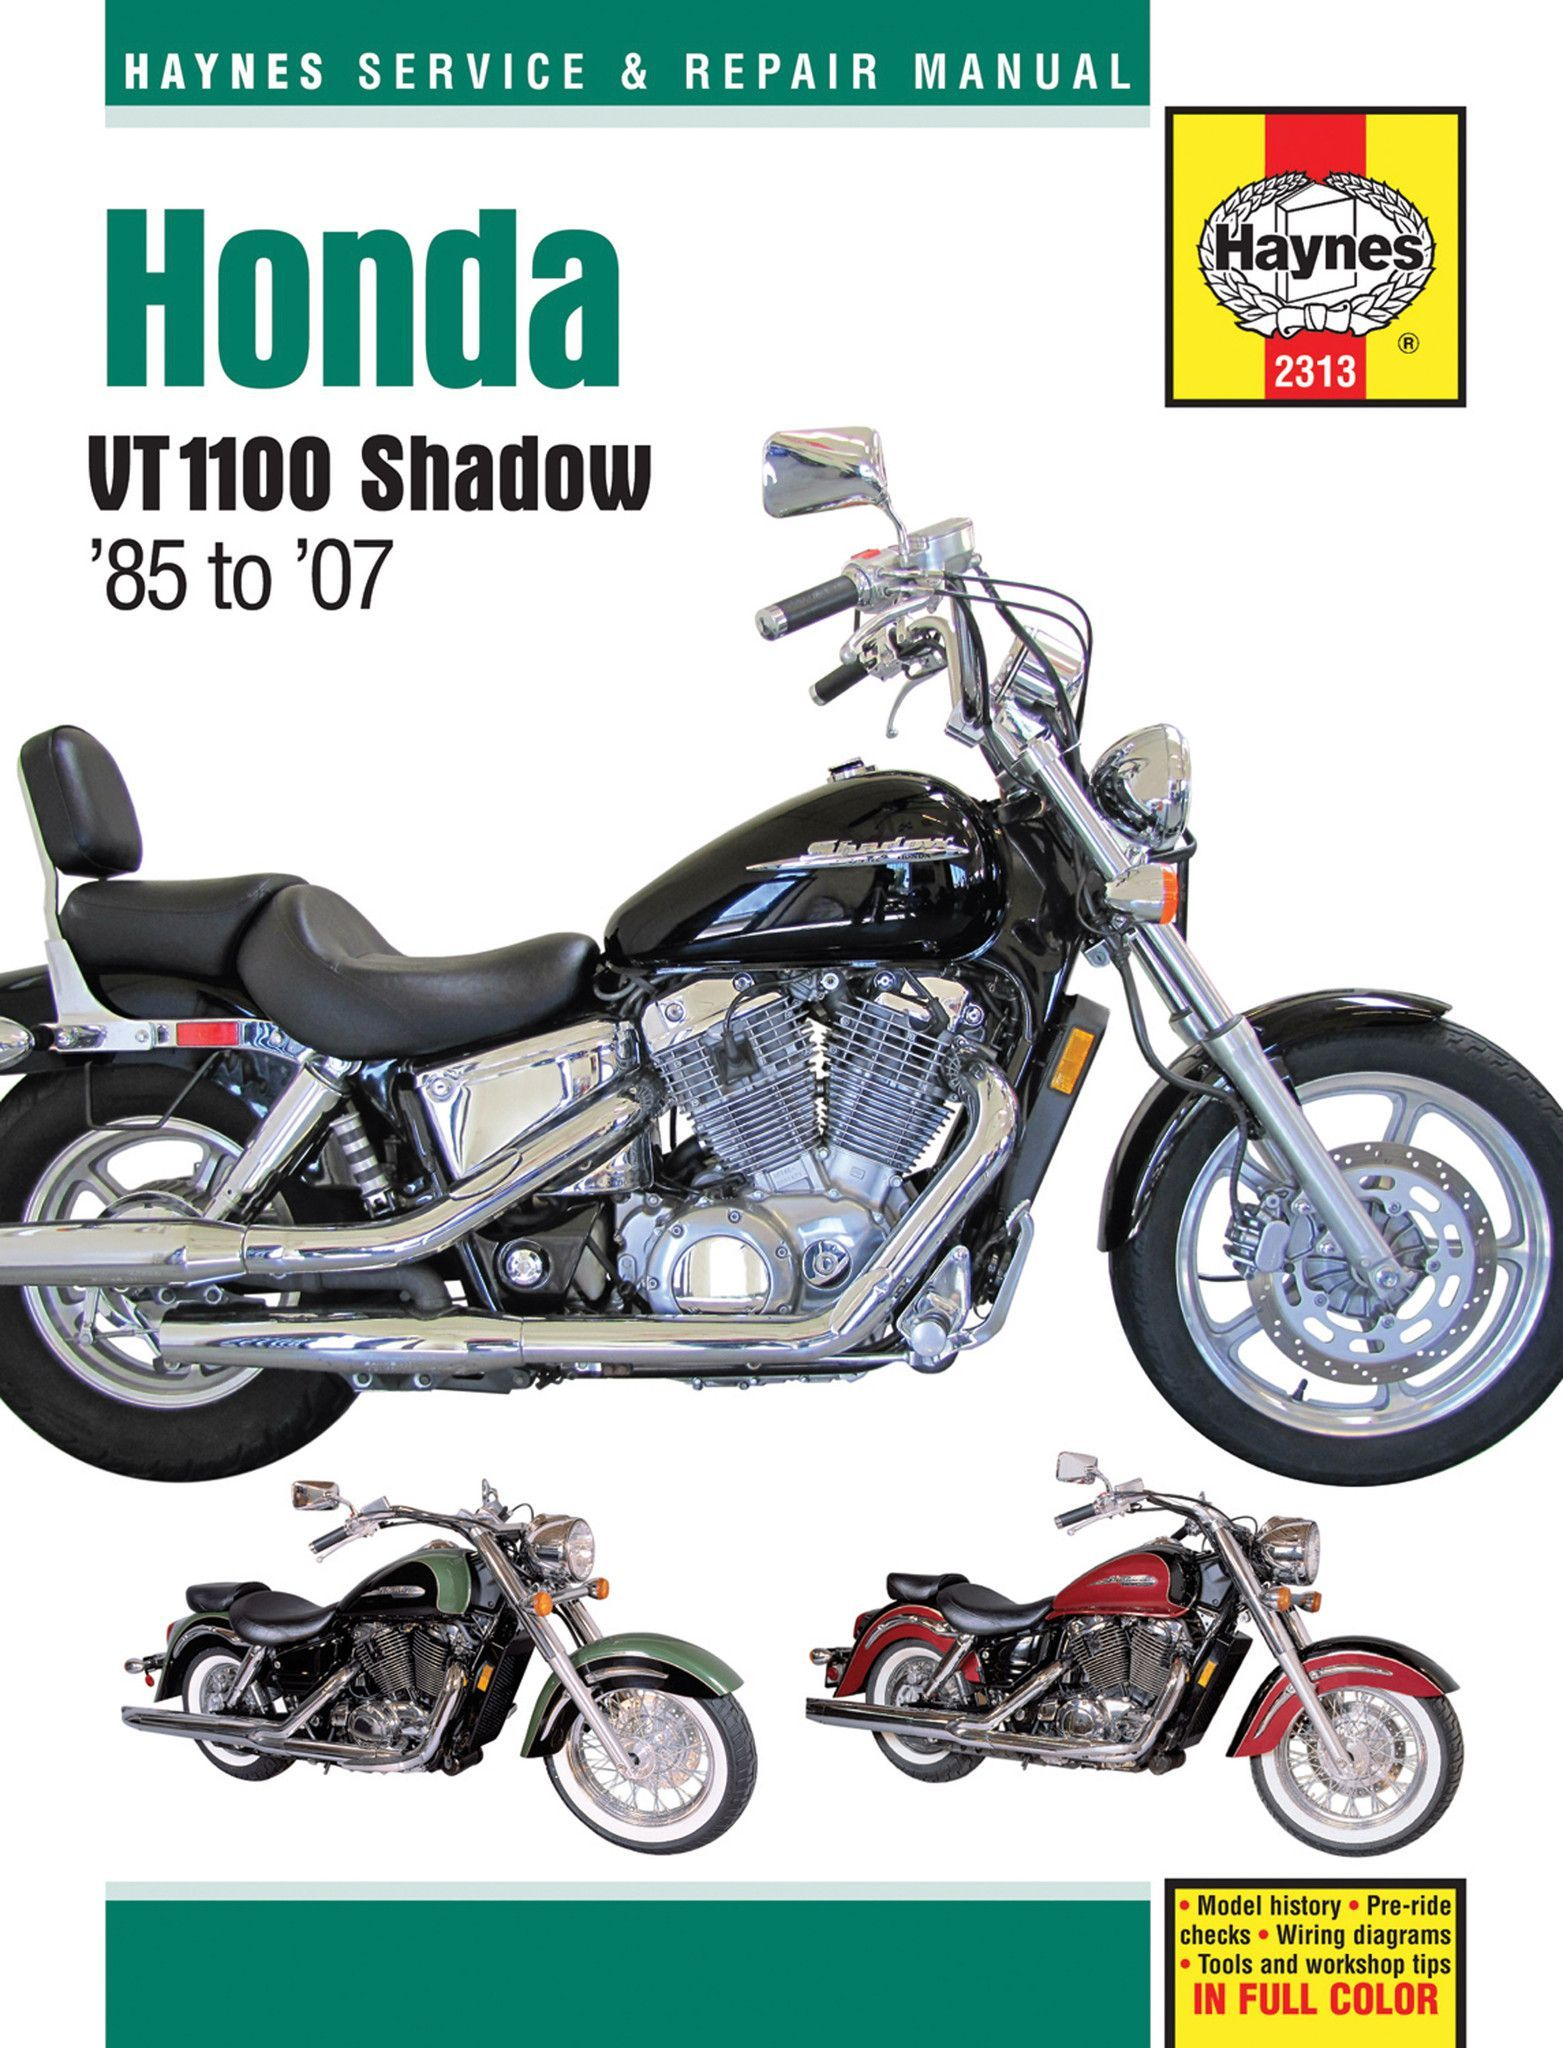 haynes m2313 service repair manual for 1985 07 honda shadow vt1100 rh pinterest com VT1100C Honda Shadow Wiring-Diagram 1985 Honda Shadow Wiring-Diagram